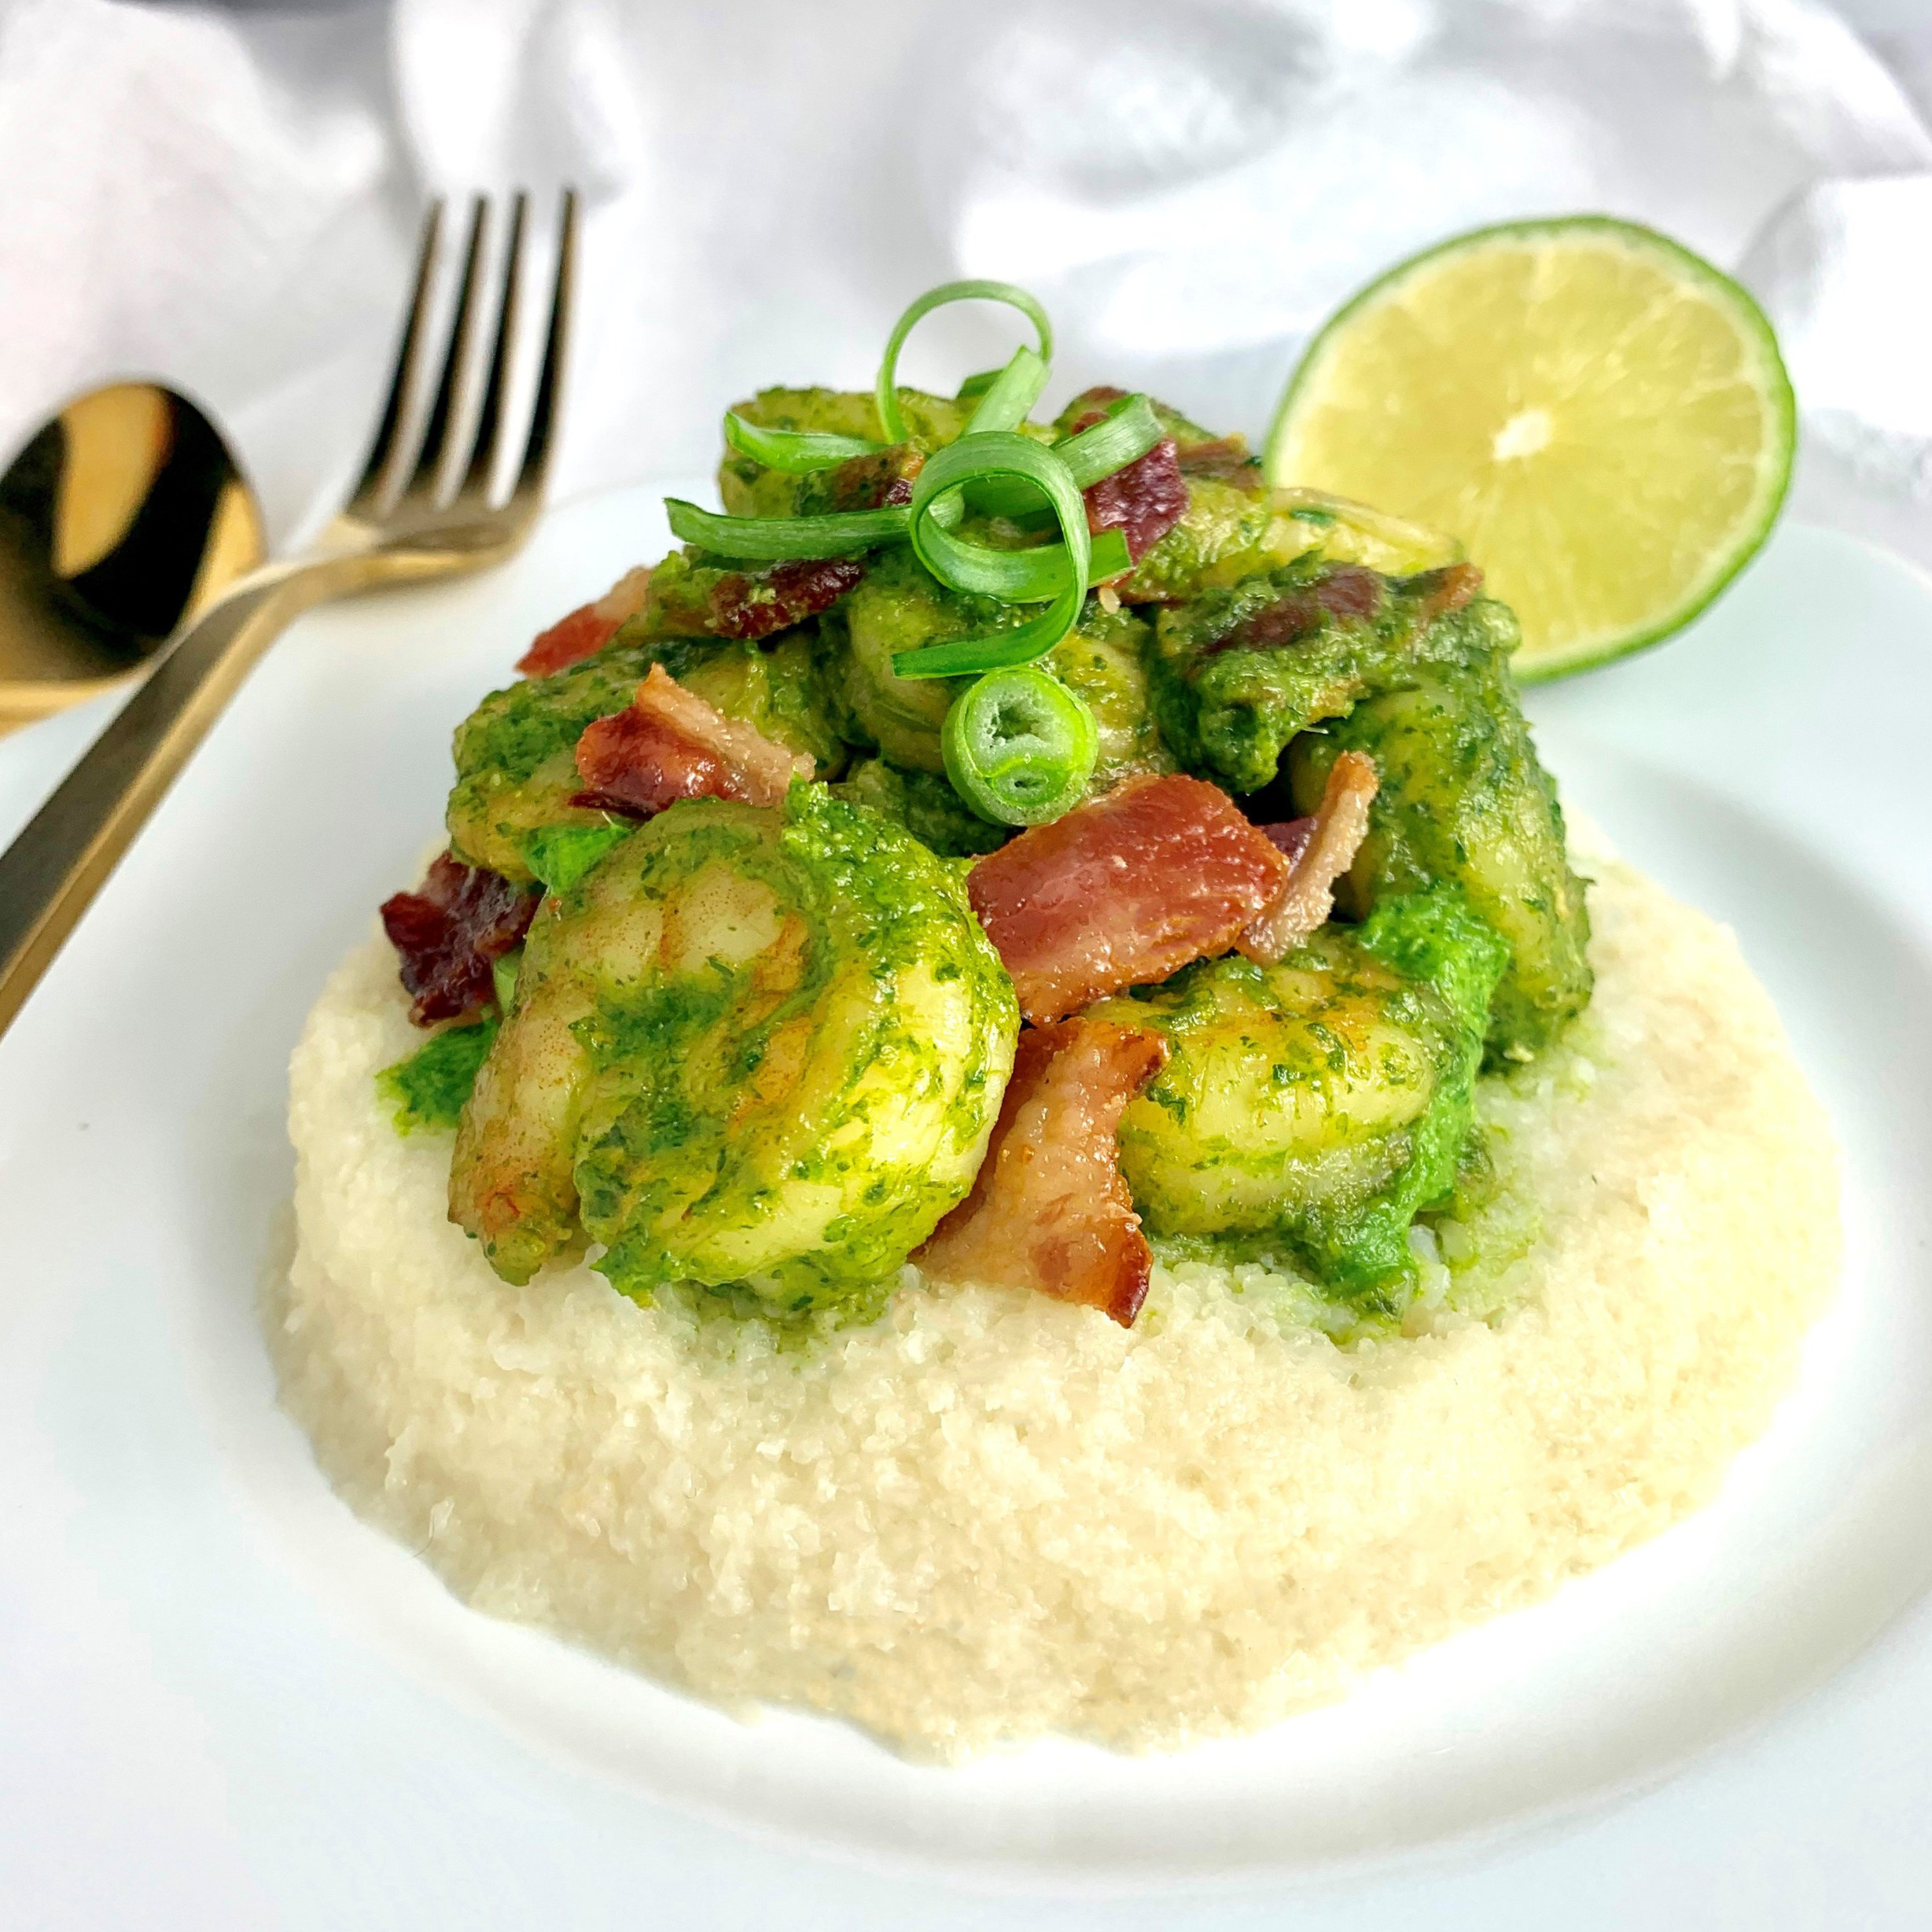 Shrimp+and+Grits+with+Cilantro+Sauce.jpg